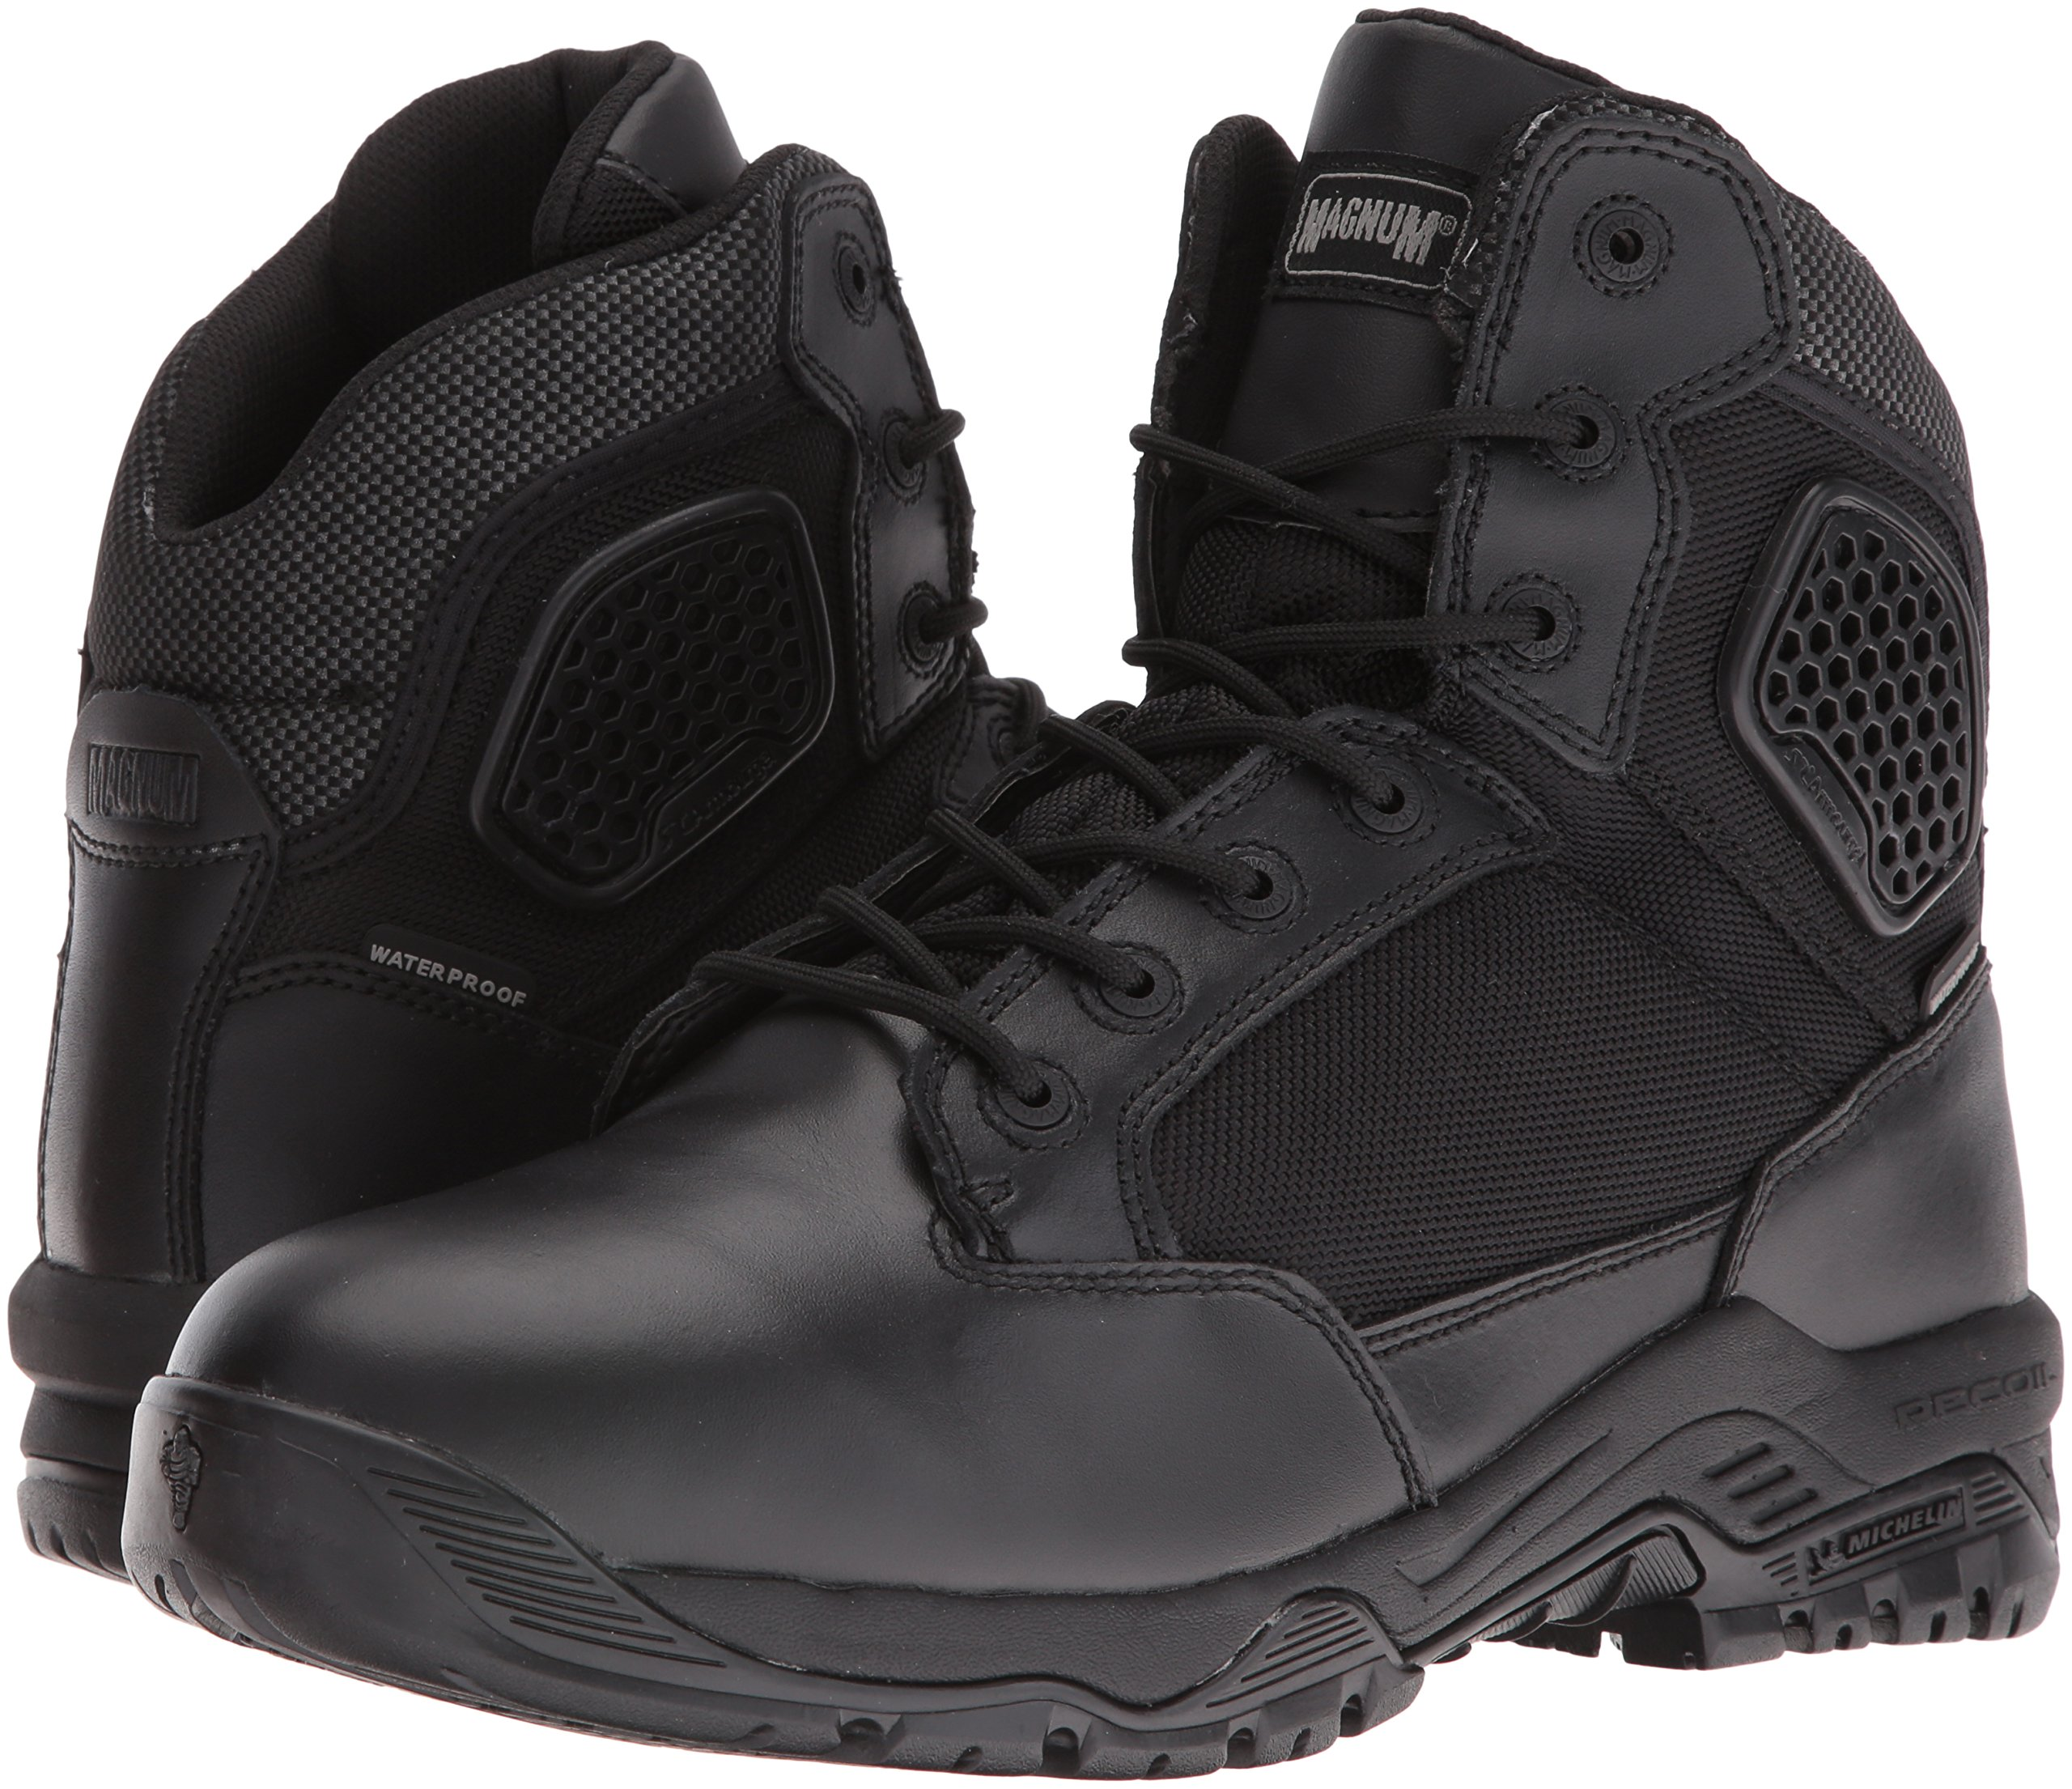 Magnum Men's Strike Force 6'' Waterproof Military & Tactical Boot, Black 14 W US by Magnum (Image #6)